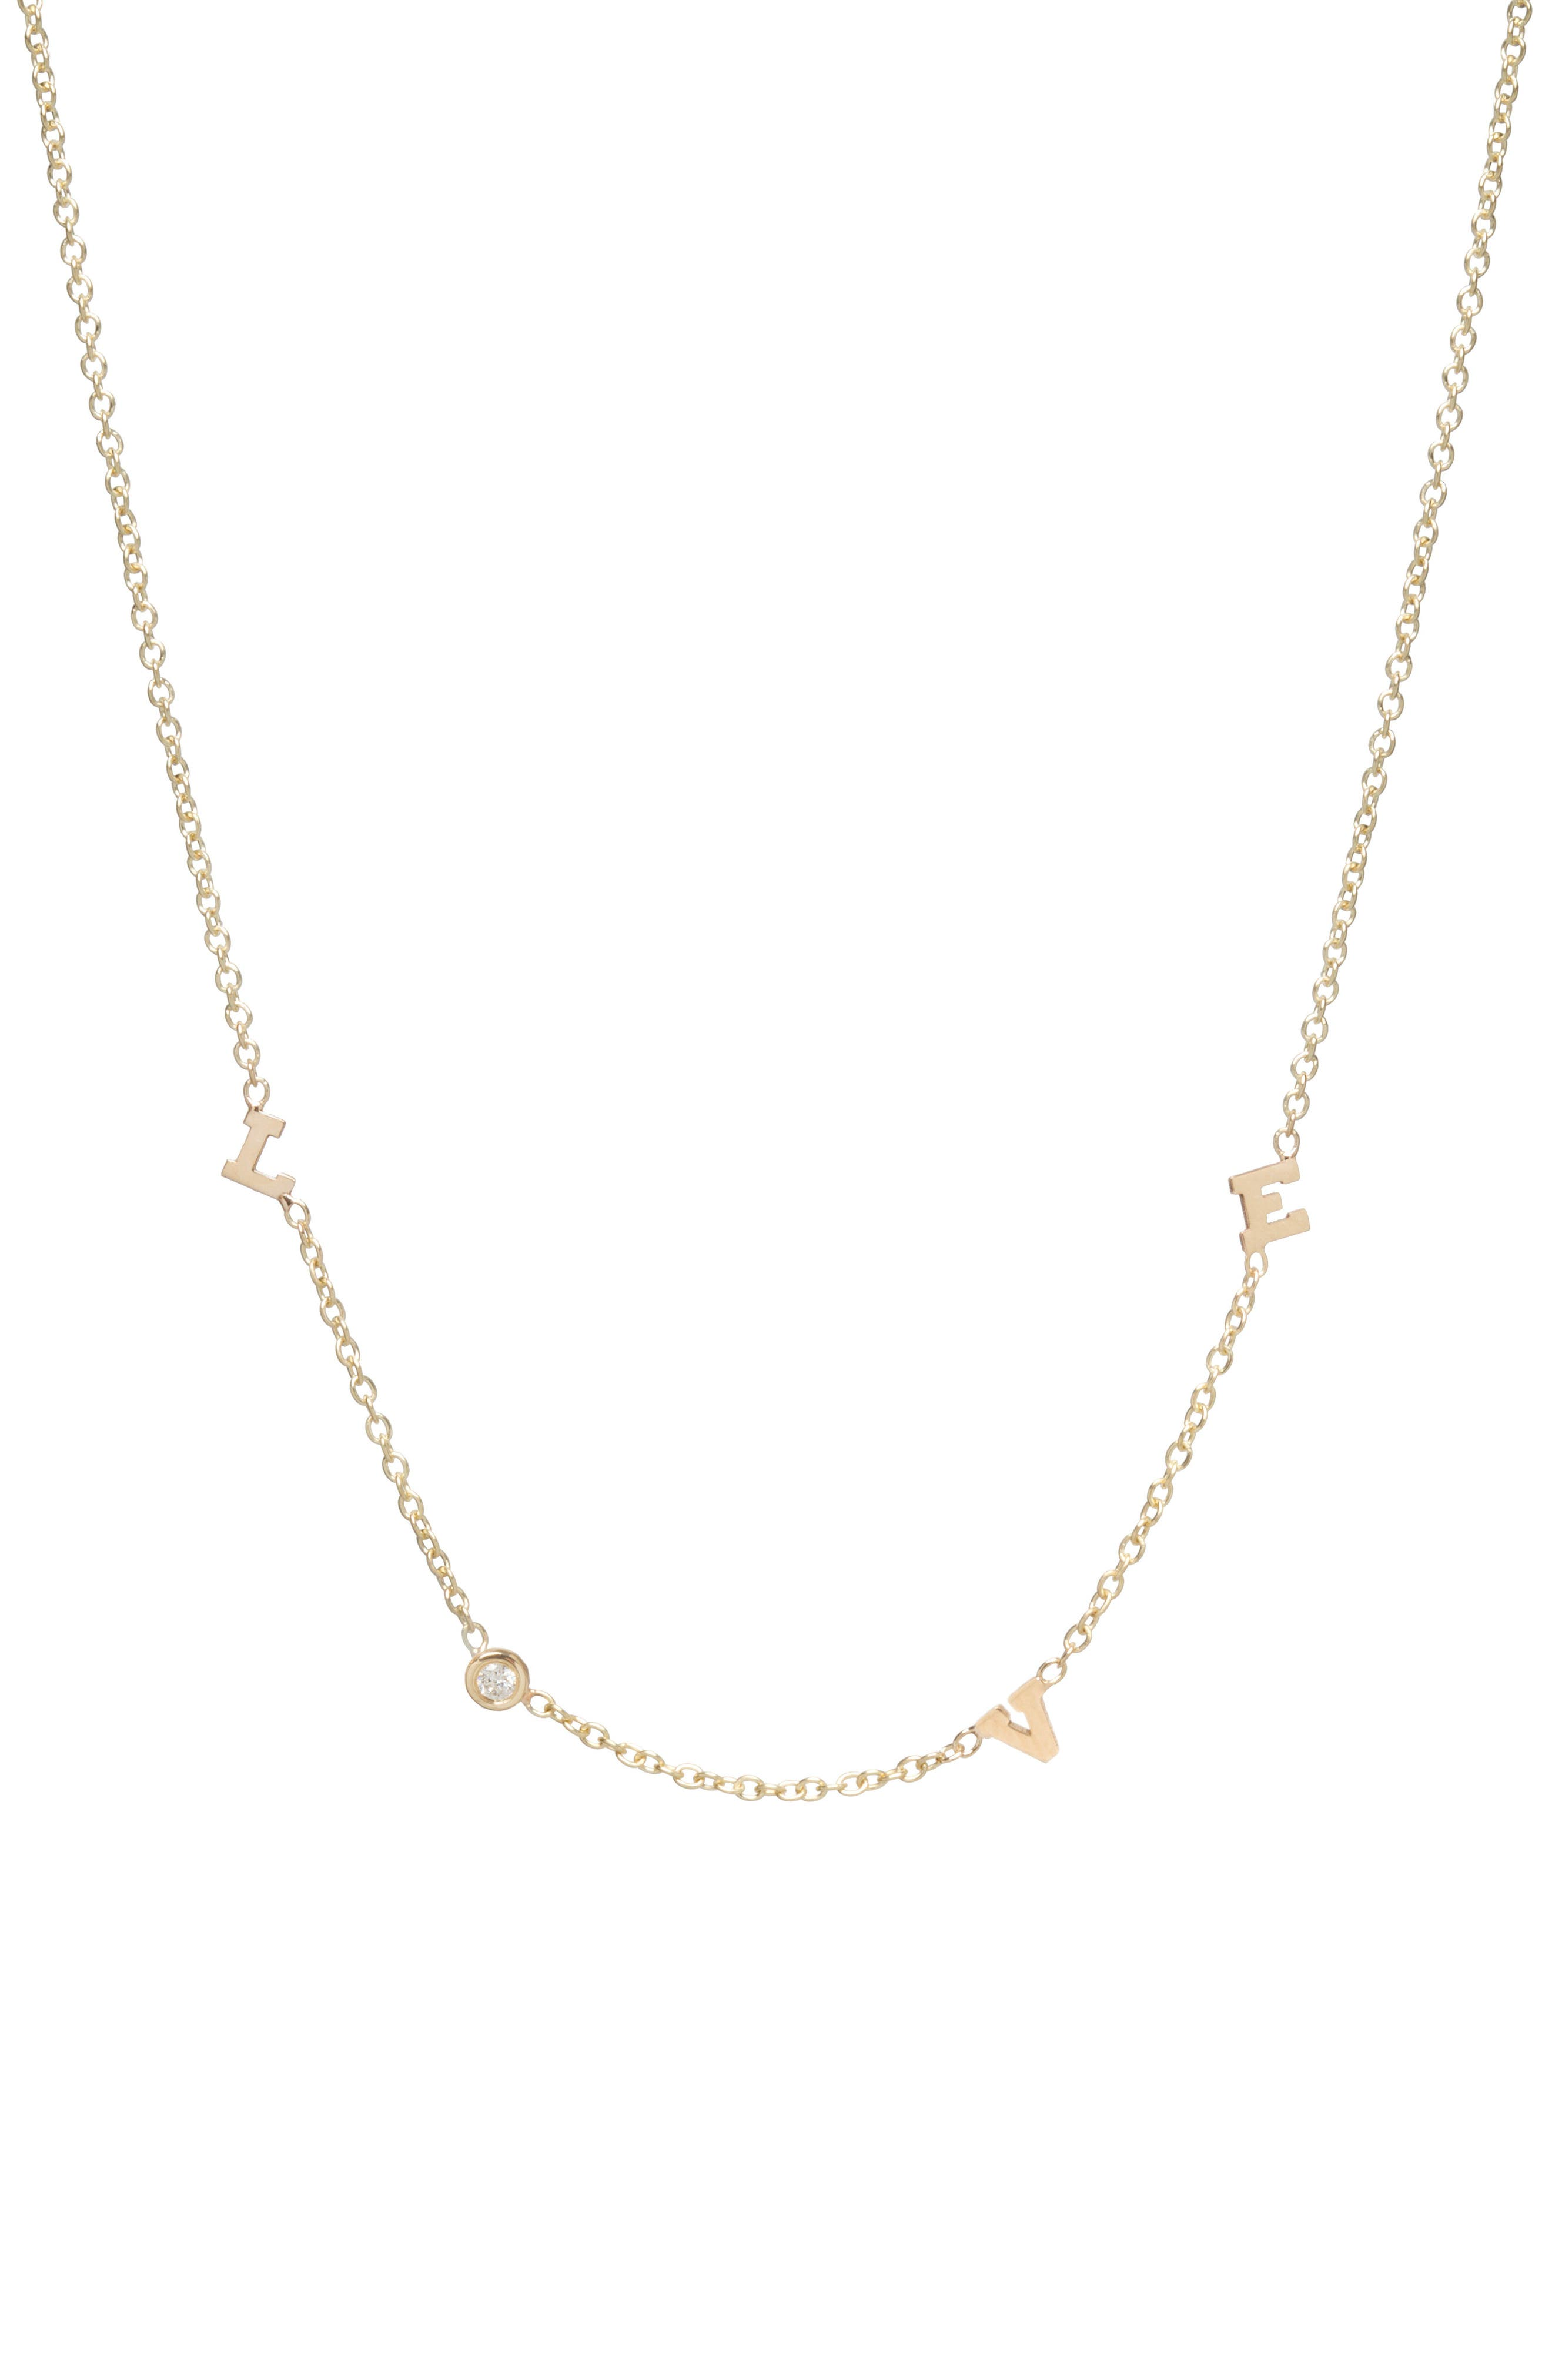 Itty Bitty Love Diamond Necklace,                             Alternate thumbnail 3, color,                             Yellow Gold